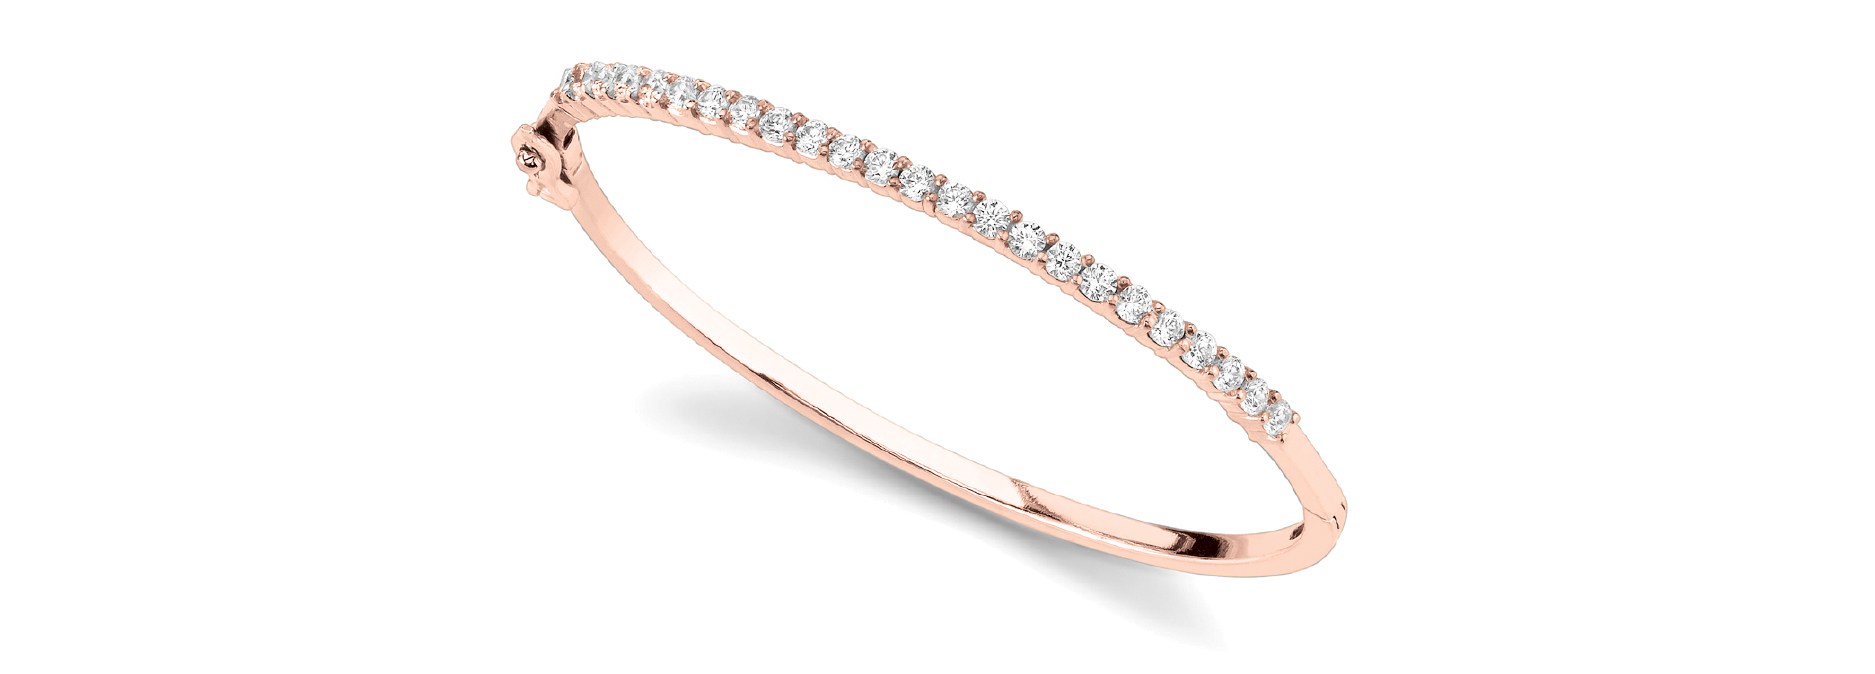 1.9 Carat Round Diamond Bangle in Rose Gold